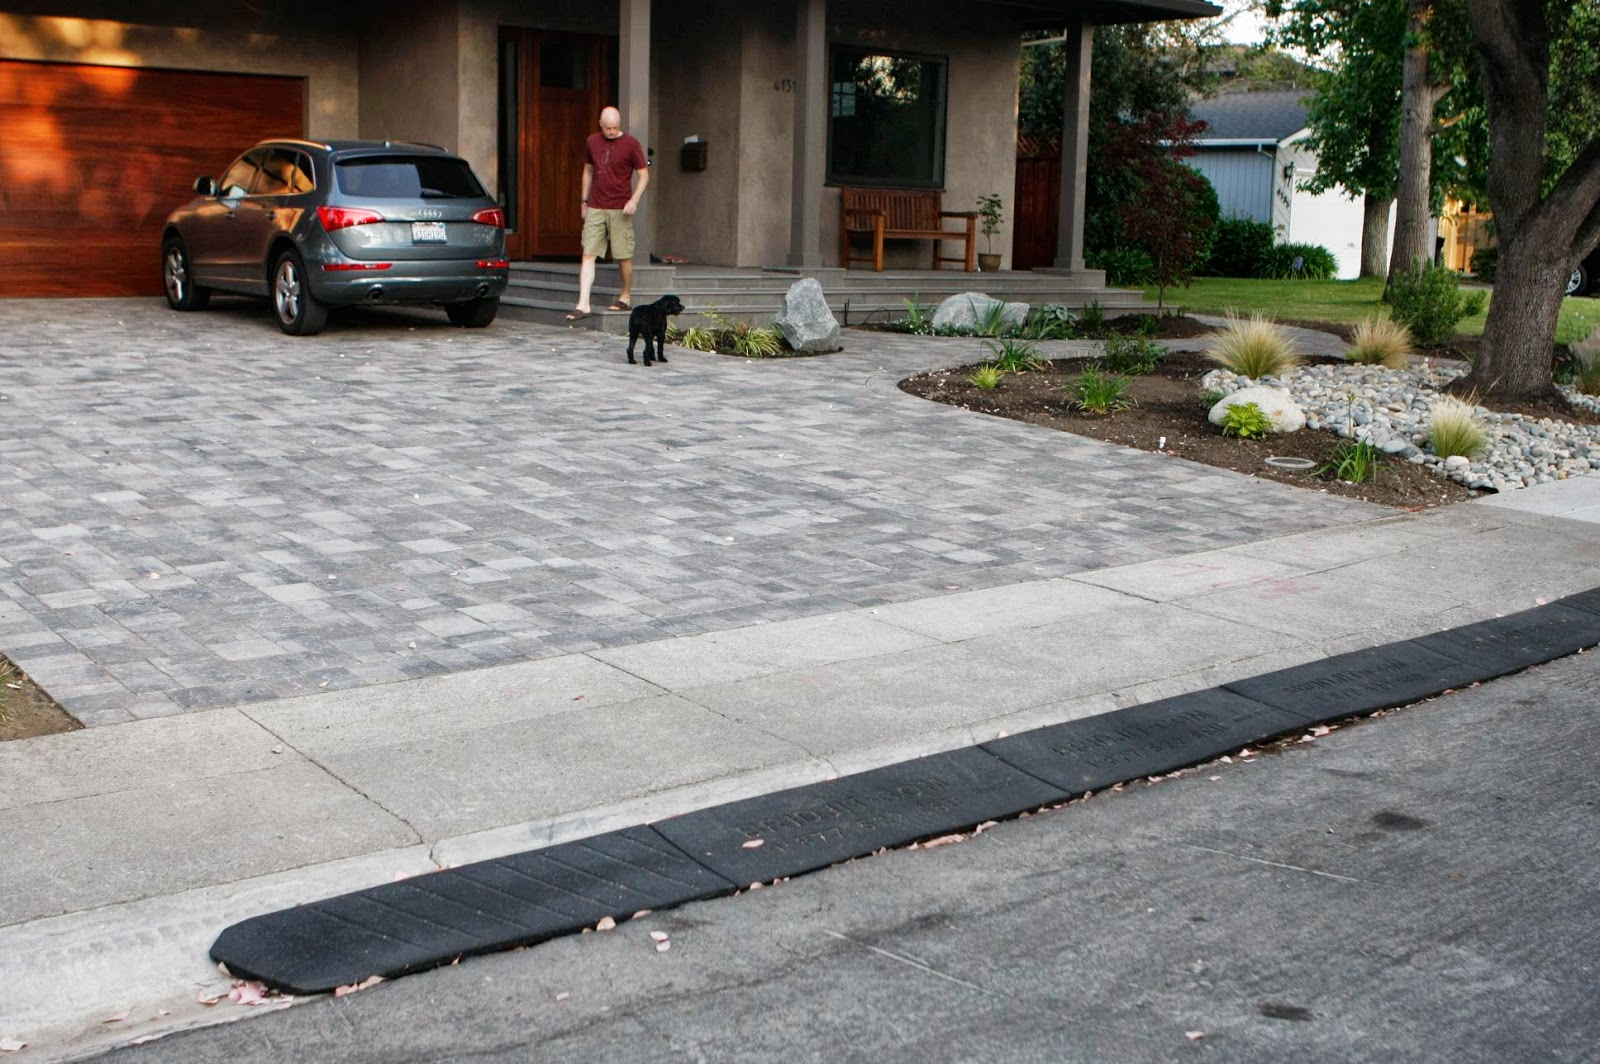 A Quick And Easy Driveway Thumbs Up For The Rubber Bridjit Curb Ramp